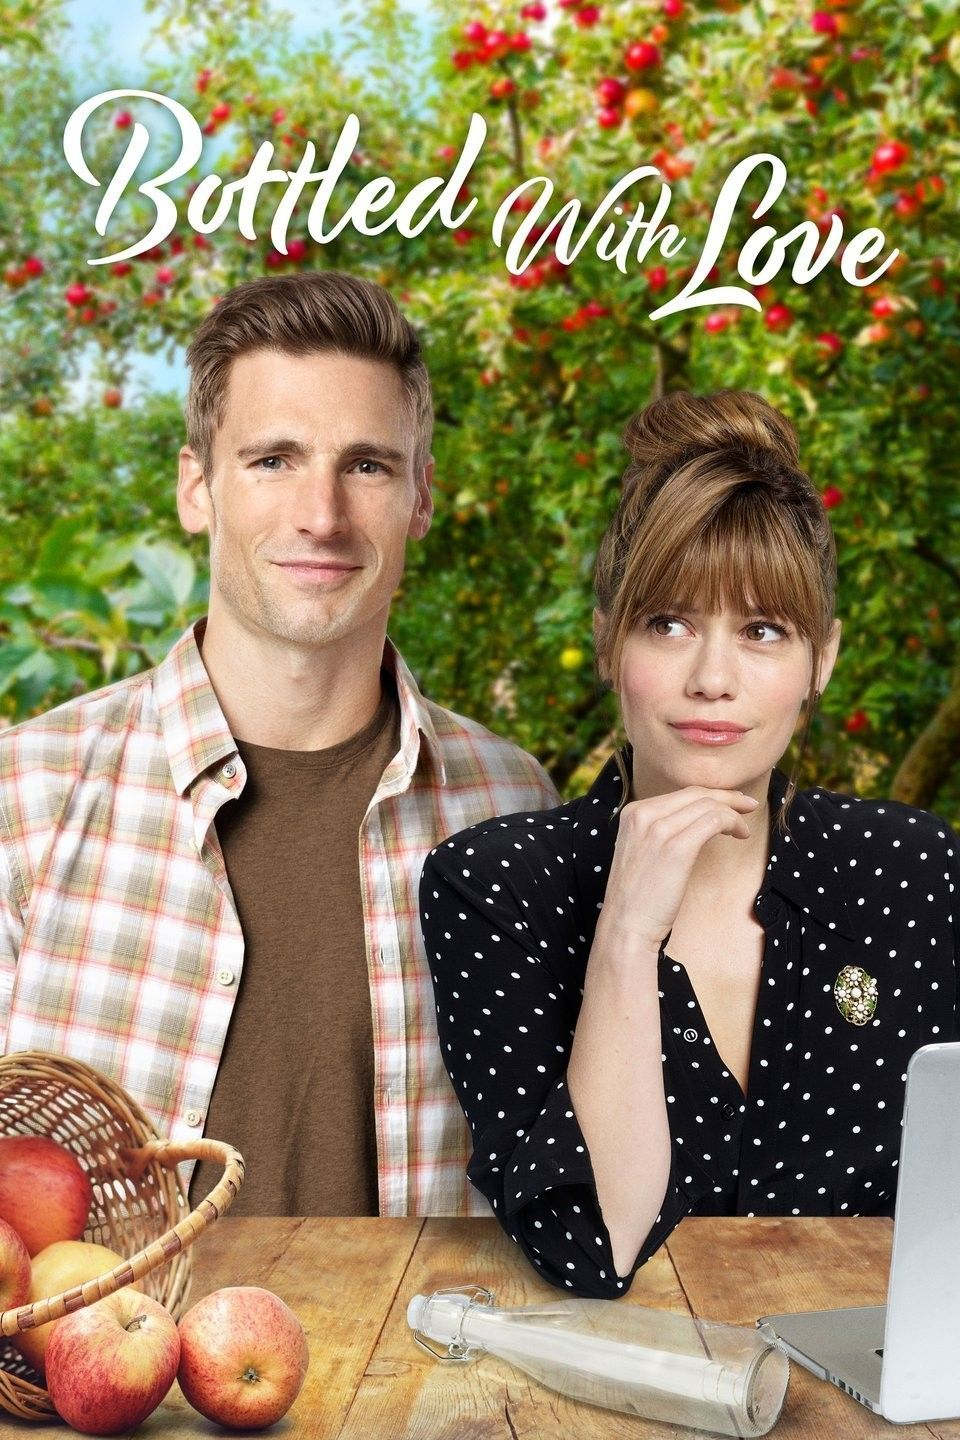 BOTTLE WITH LOVE. In this movie Bethany Joy Lenz plays